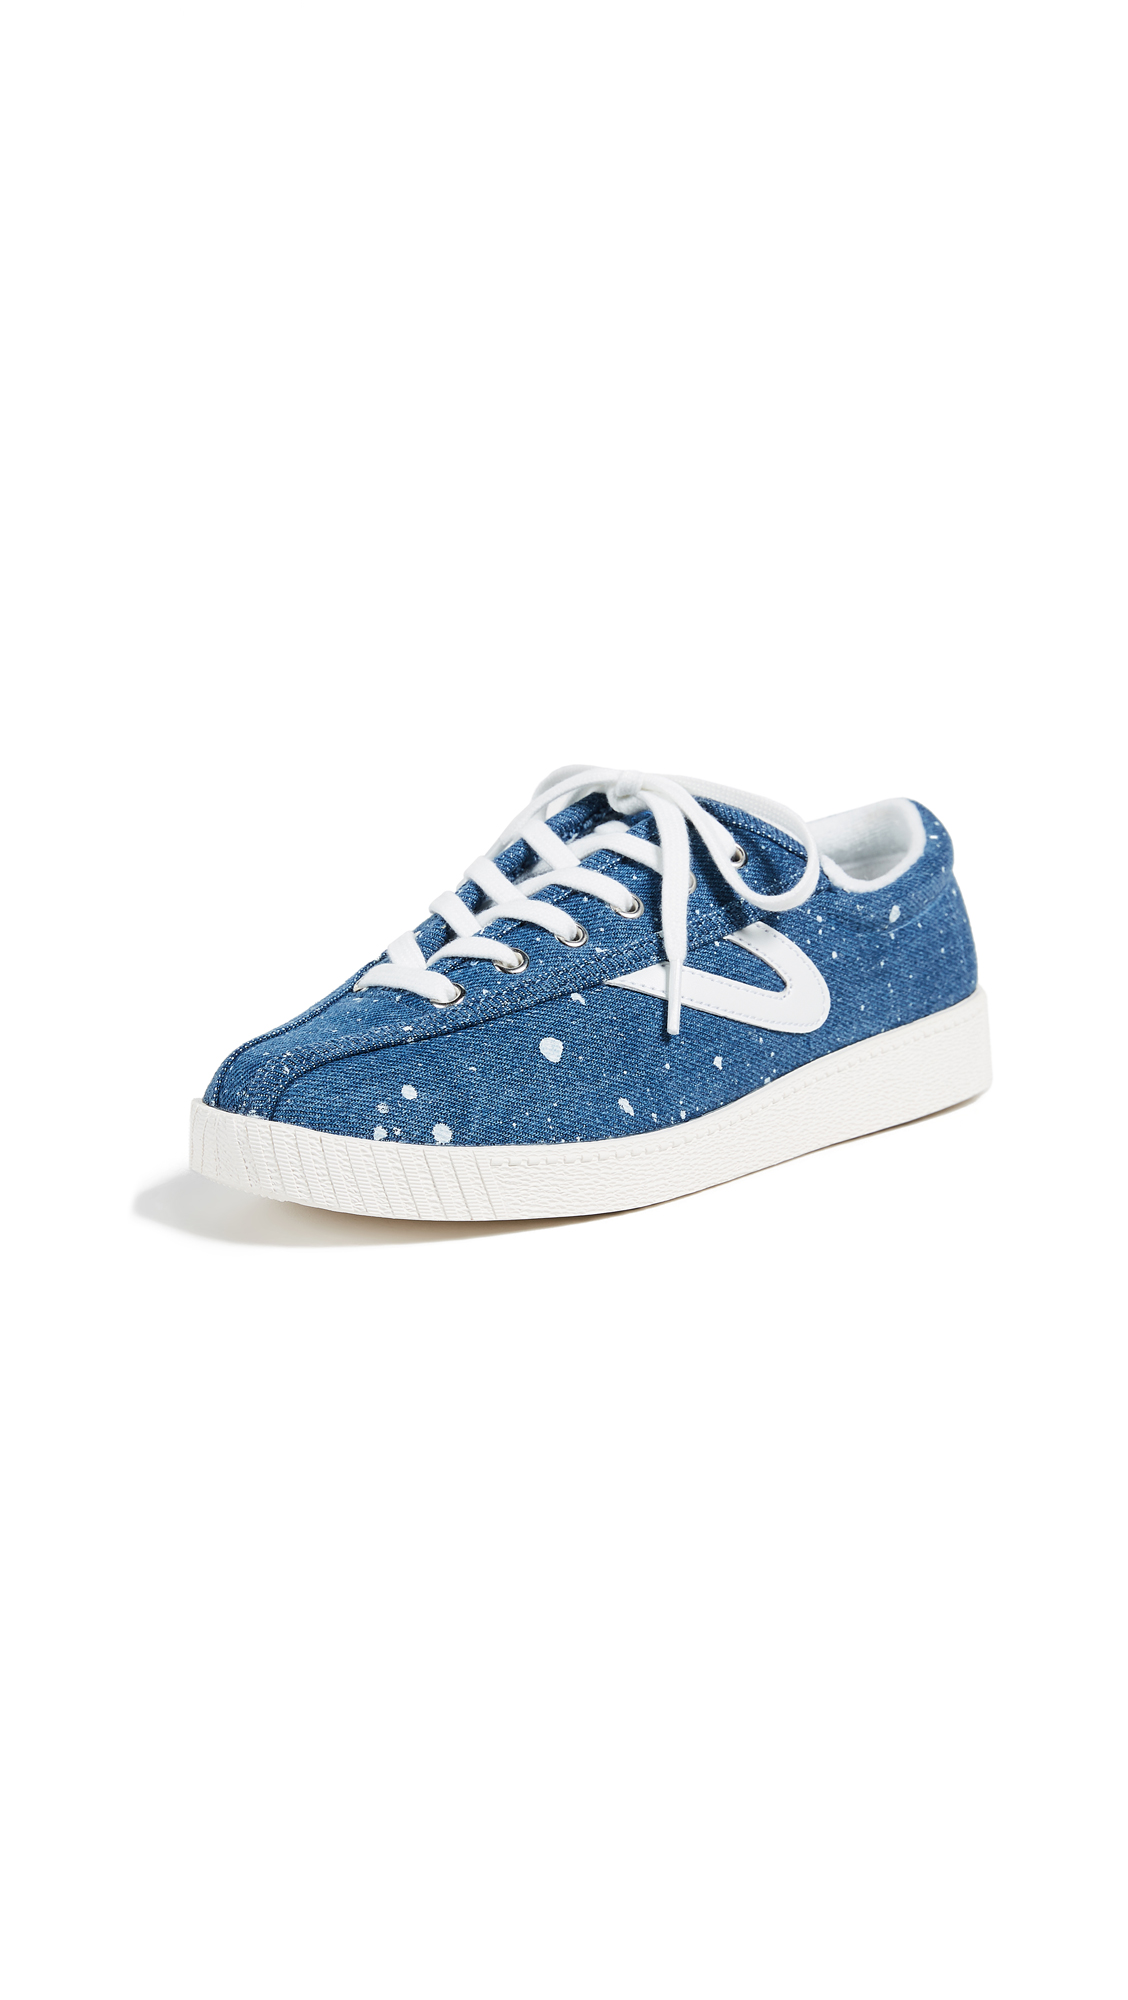 Tretorn Nylite Plus Lace Up Sneakers - Dark Blue